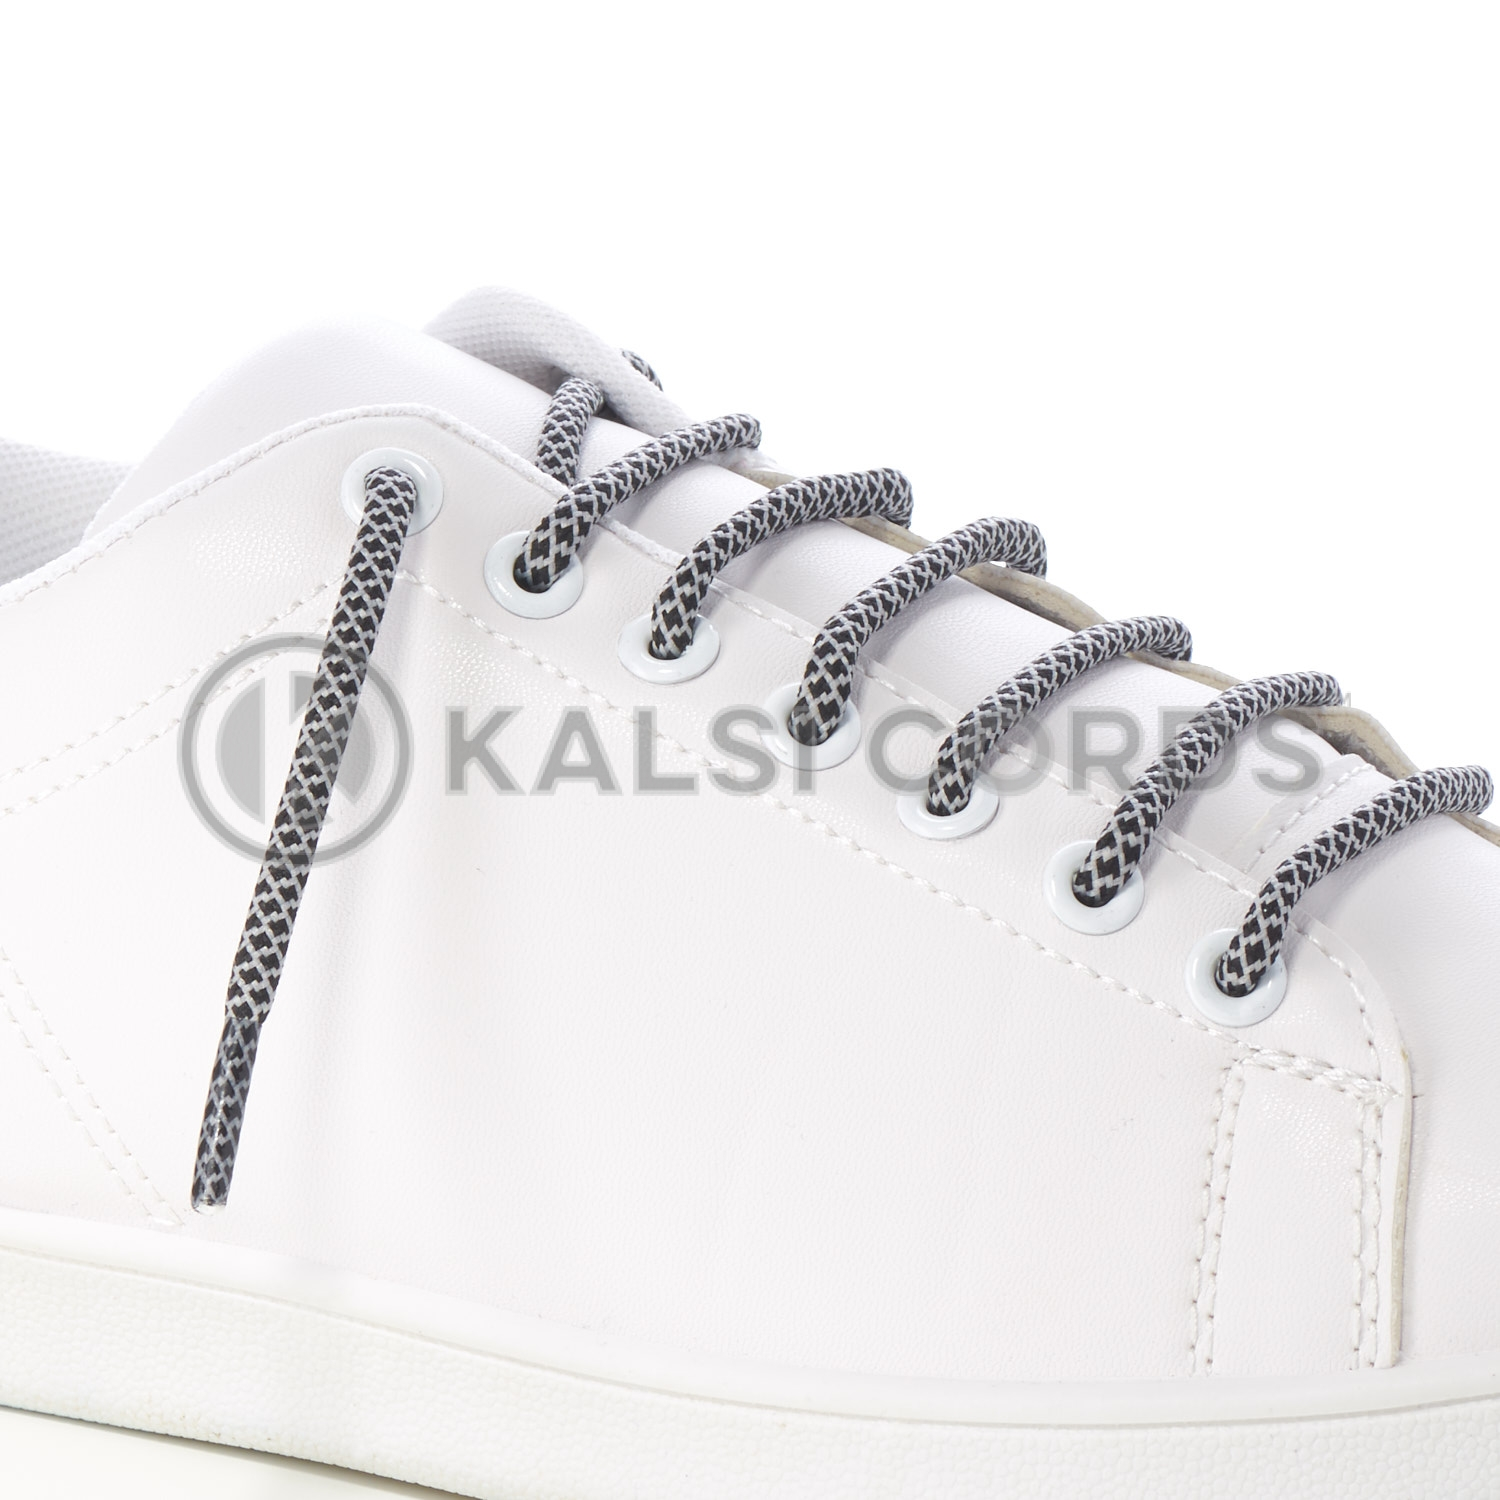 T655 5mm Round Cord Honeycomb Shoe Lace Black Light Grey Kids Trainers Adults Adidas Yeezy Boost Hiking Walking Boots Kalsi Cords